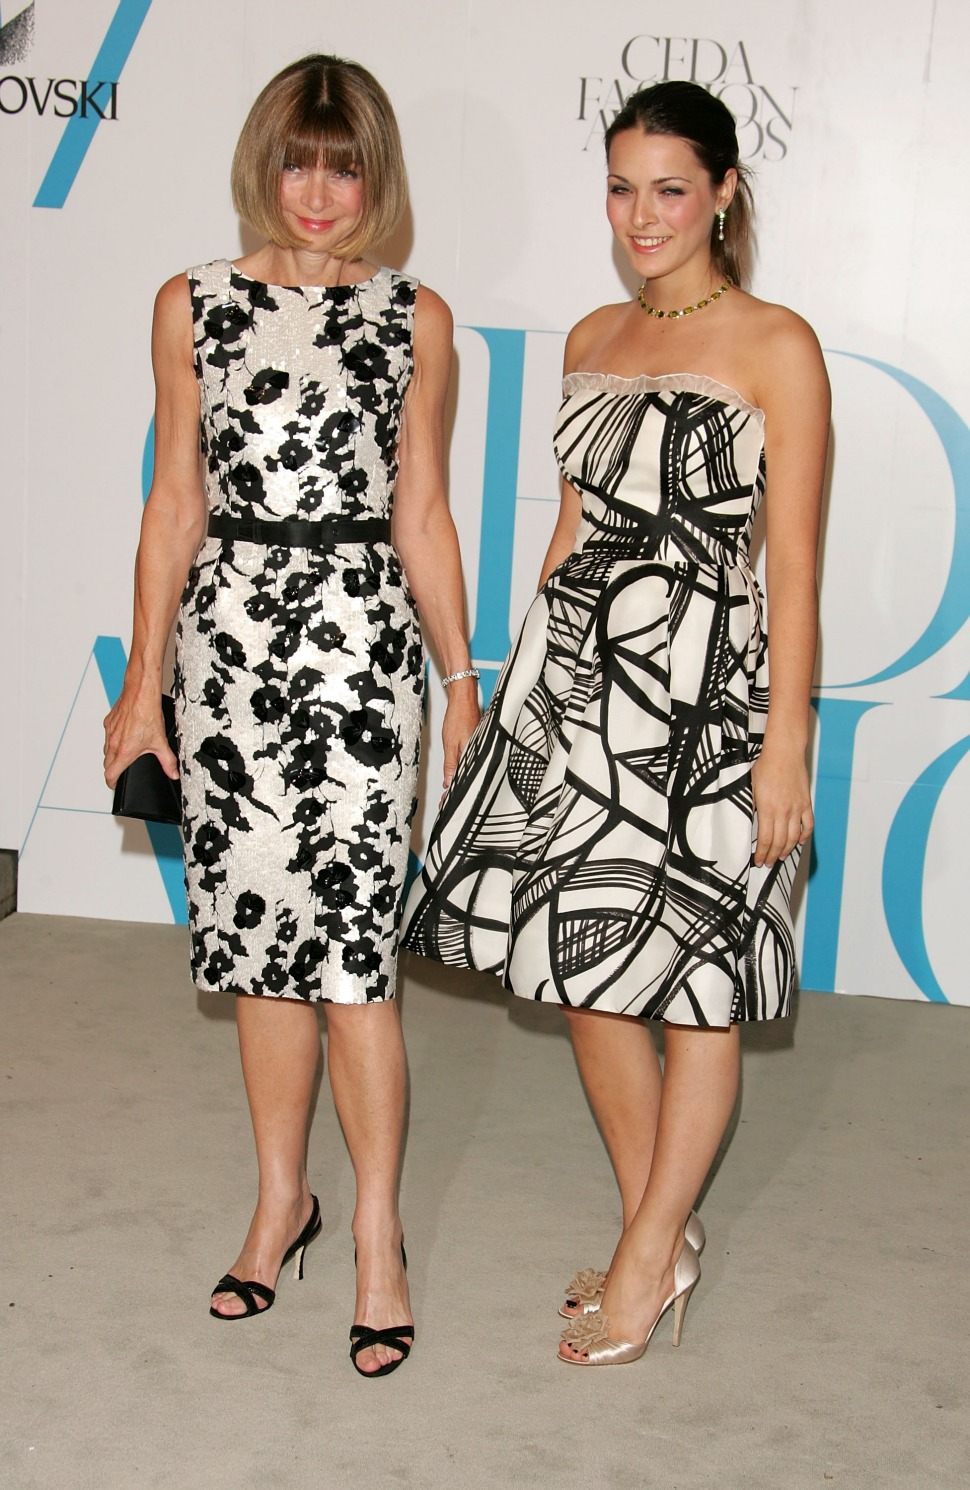 Anna Wintour with her daughter Fanny del Valle Wintour